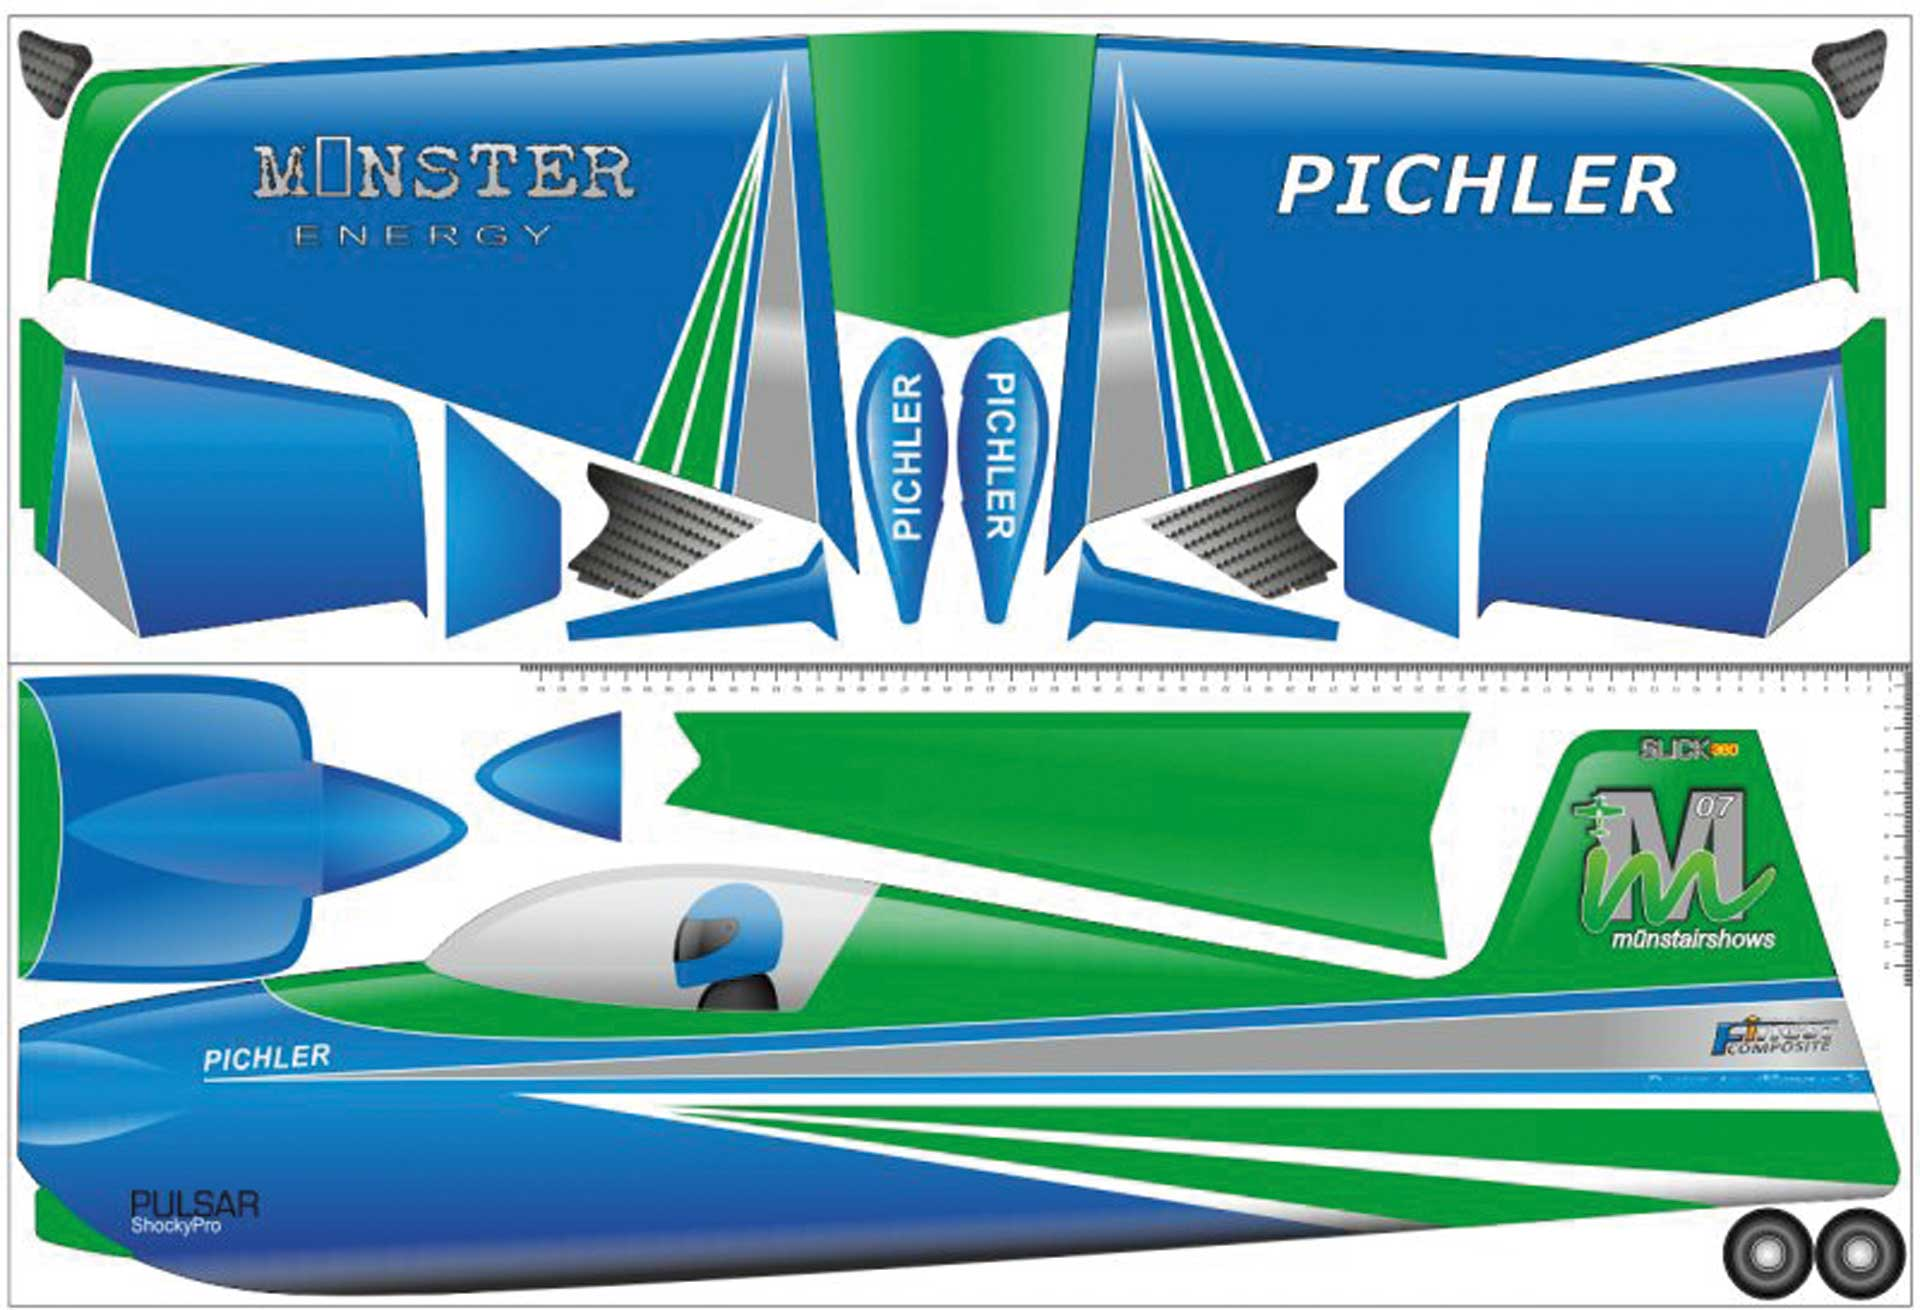 PICHLER Slick (green) Combo Set / 840mm made of Super Board